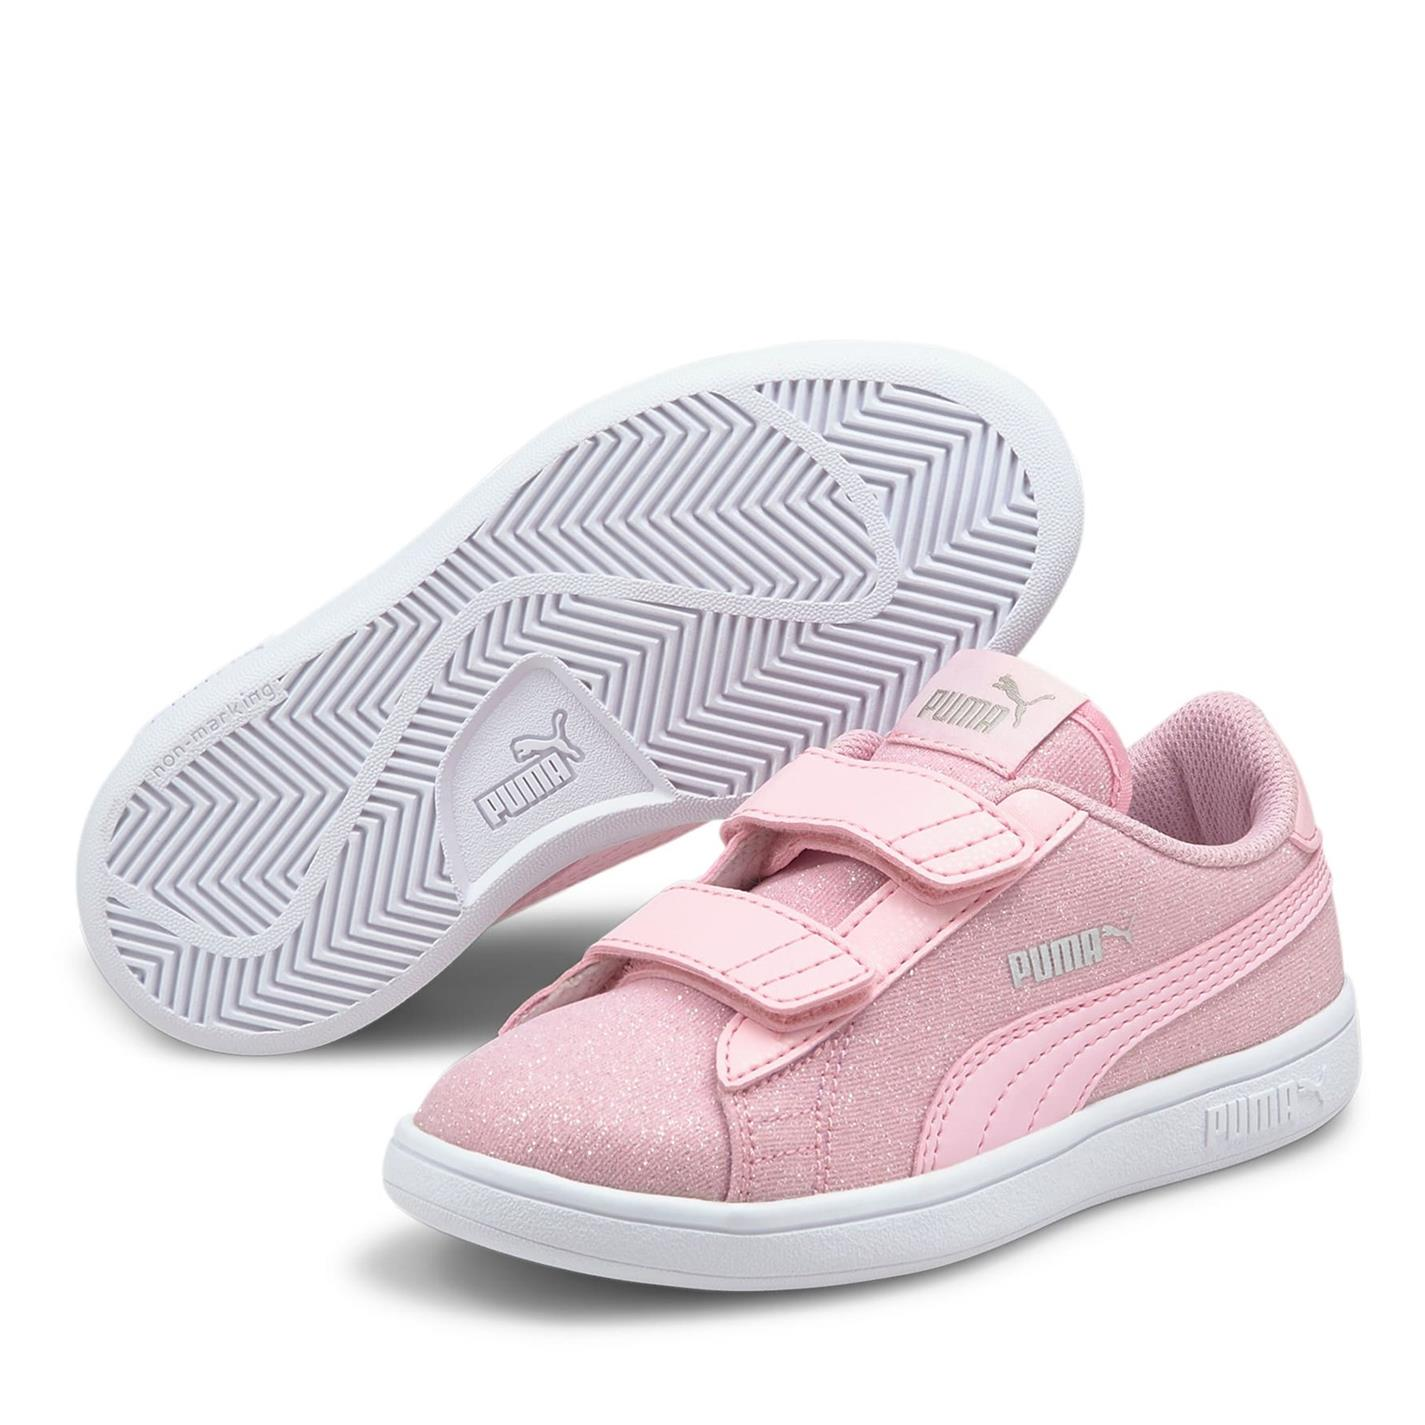 Puma Smash Glitz Court Trainers Child Girls Pink Lady